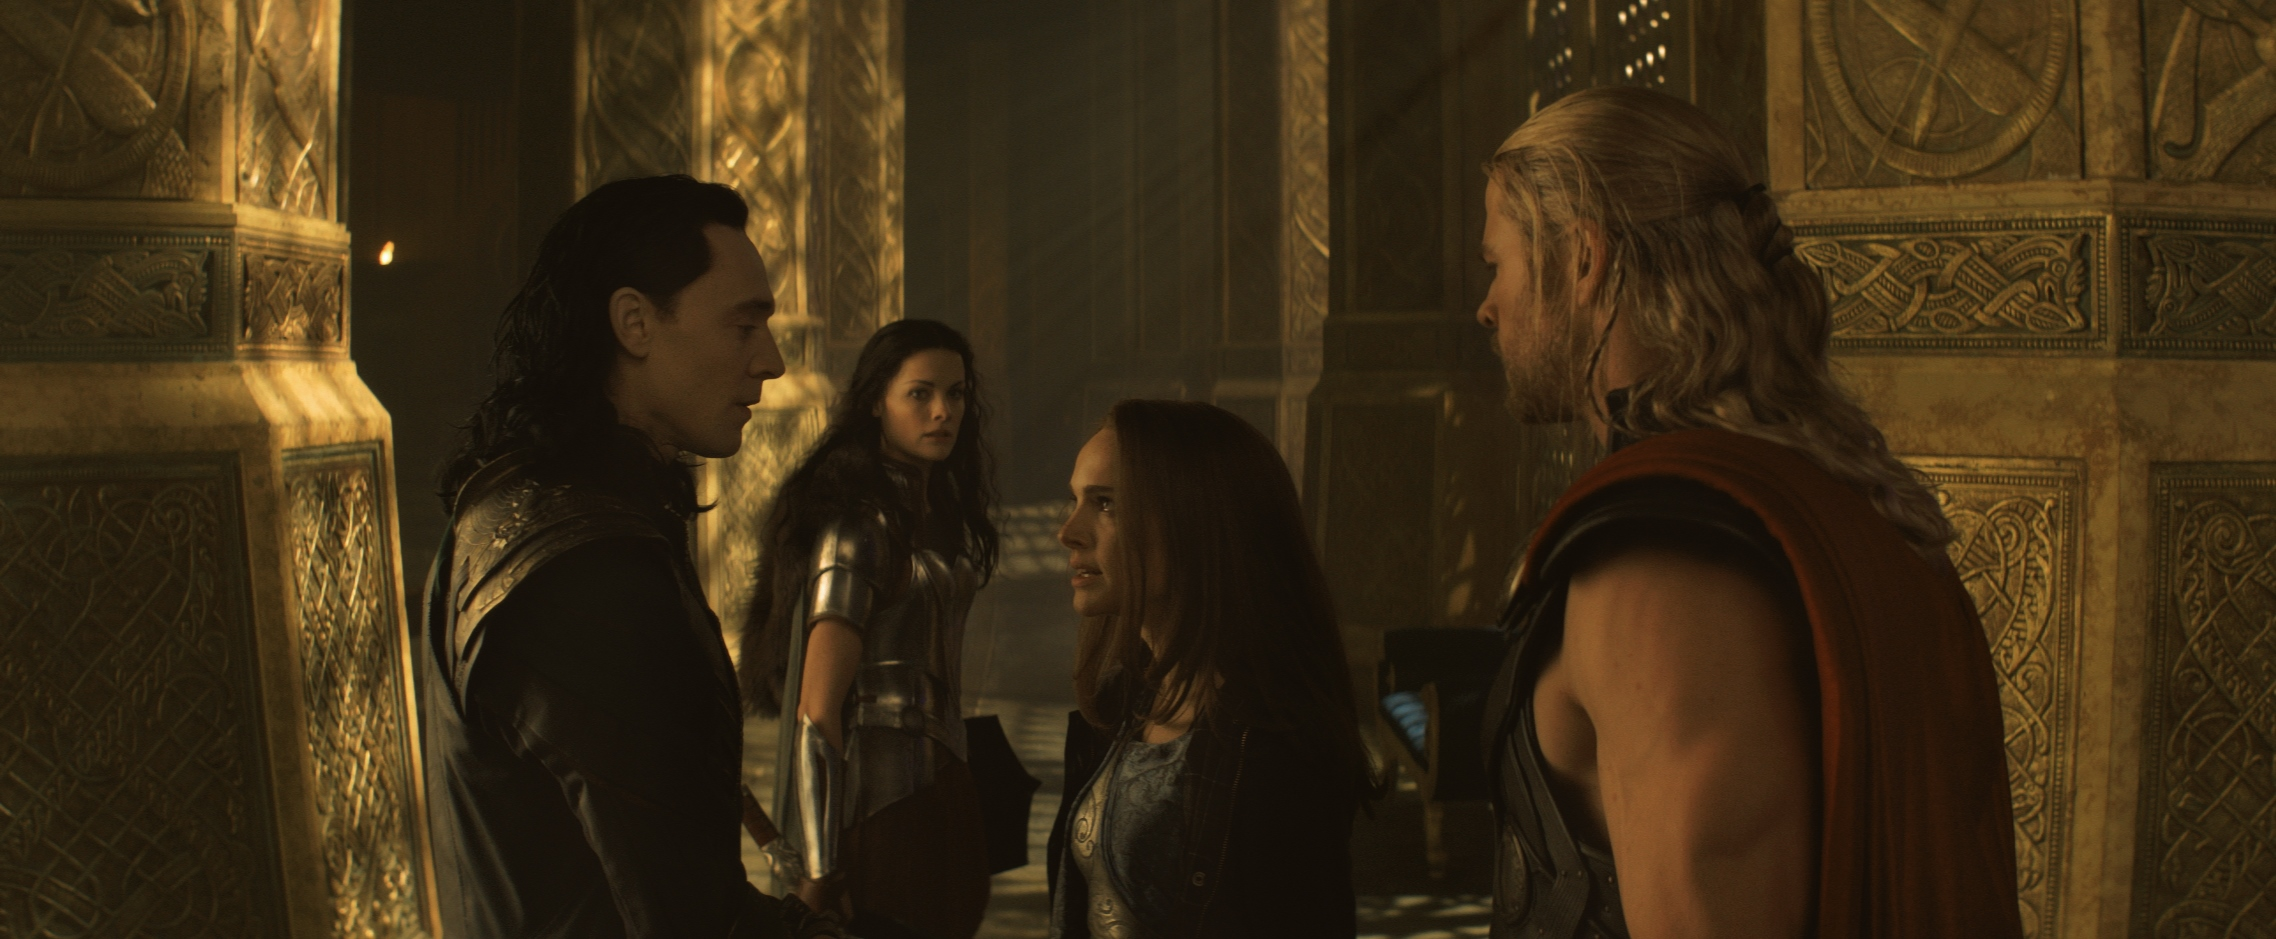 thor guys Thor: the dark world is a 2013 superhero film, based on the marvel comics superhero of the same name it is a sequel to thor and the avengers, and is the eighth installment in the marvel cinematic universe and the second installment of phase two.